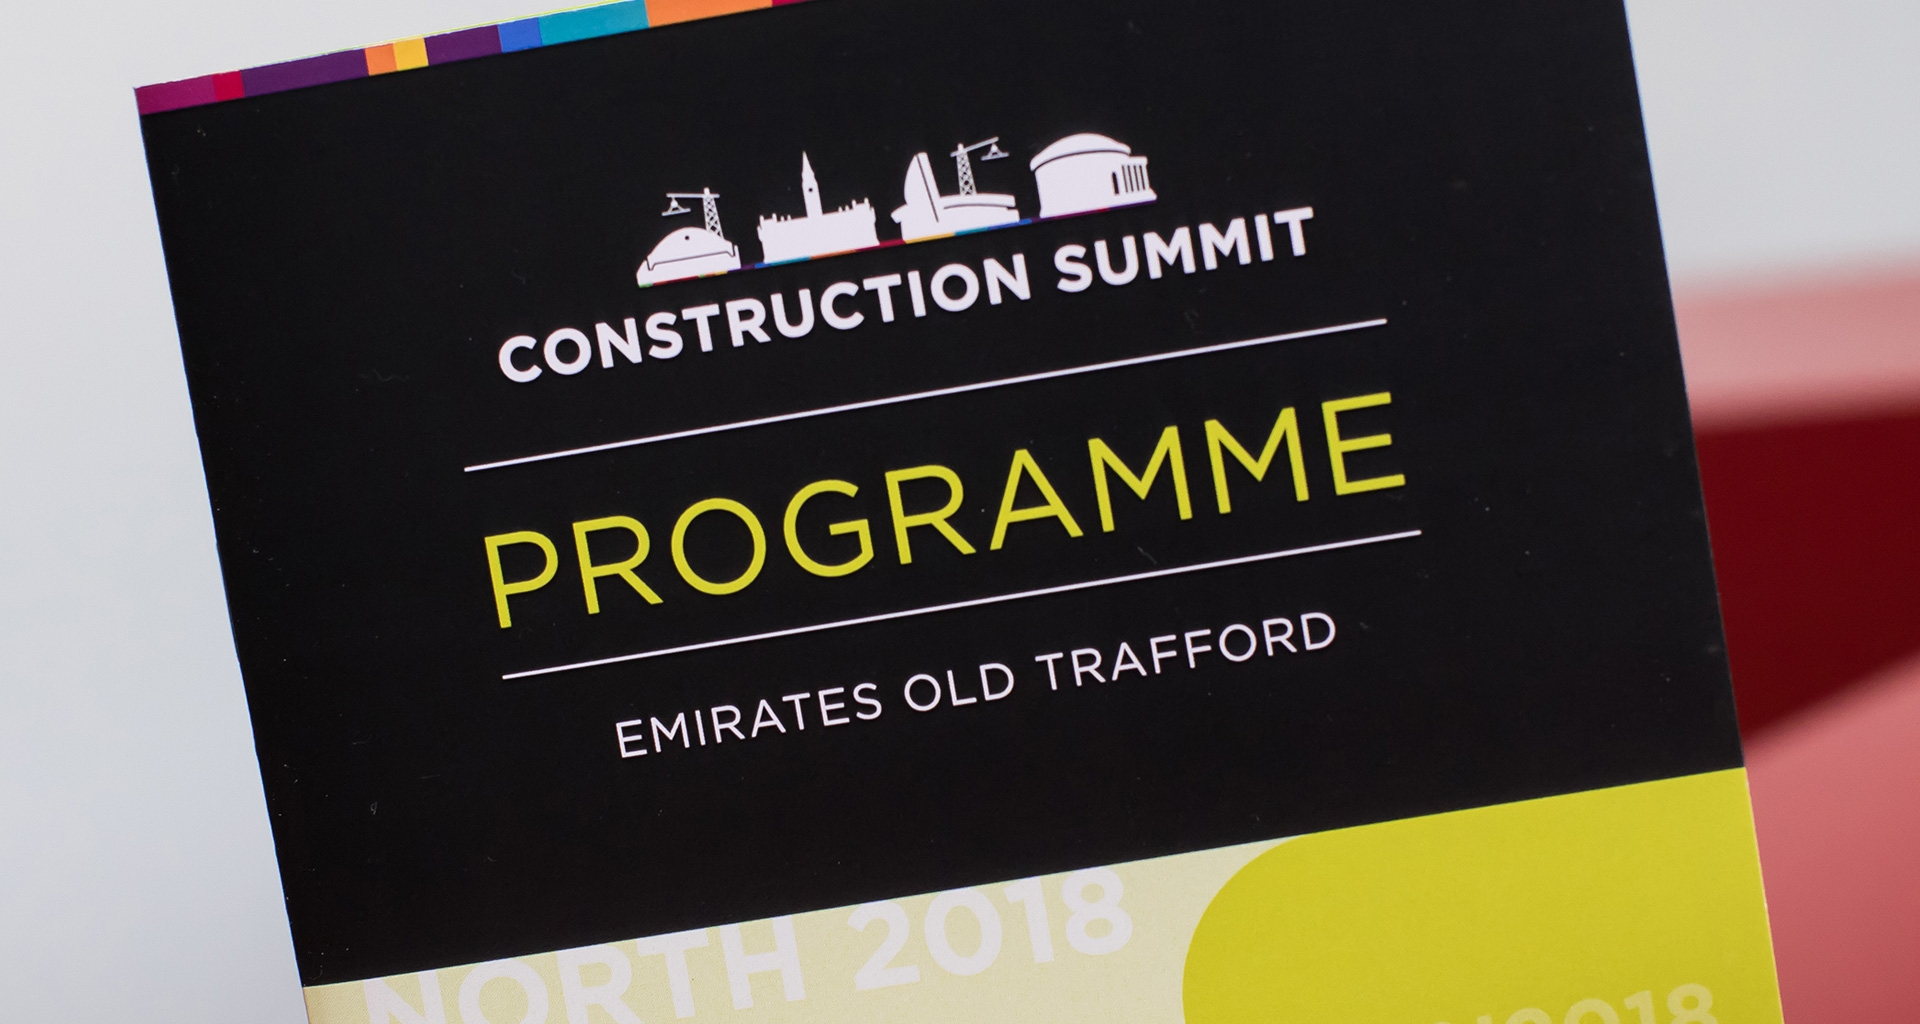 Construction Summit 2018 Manchester